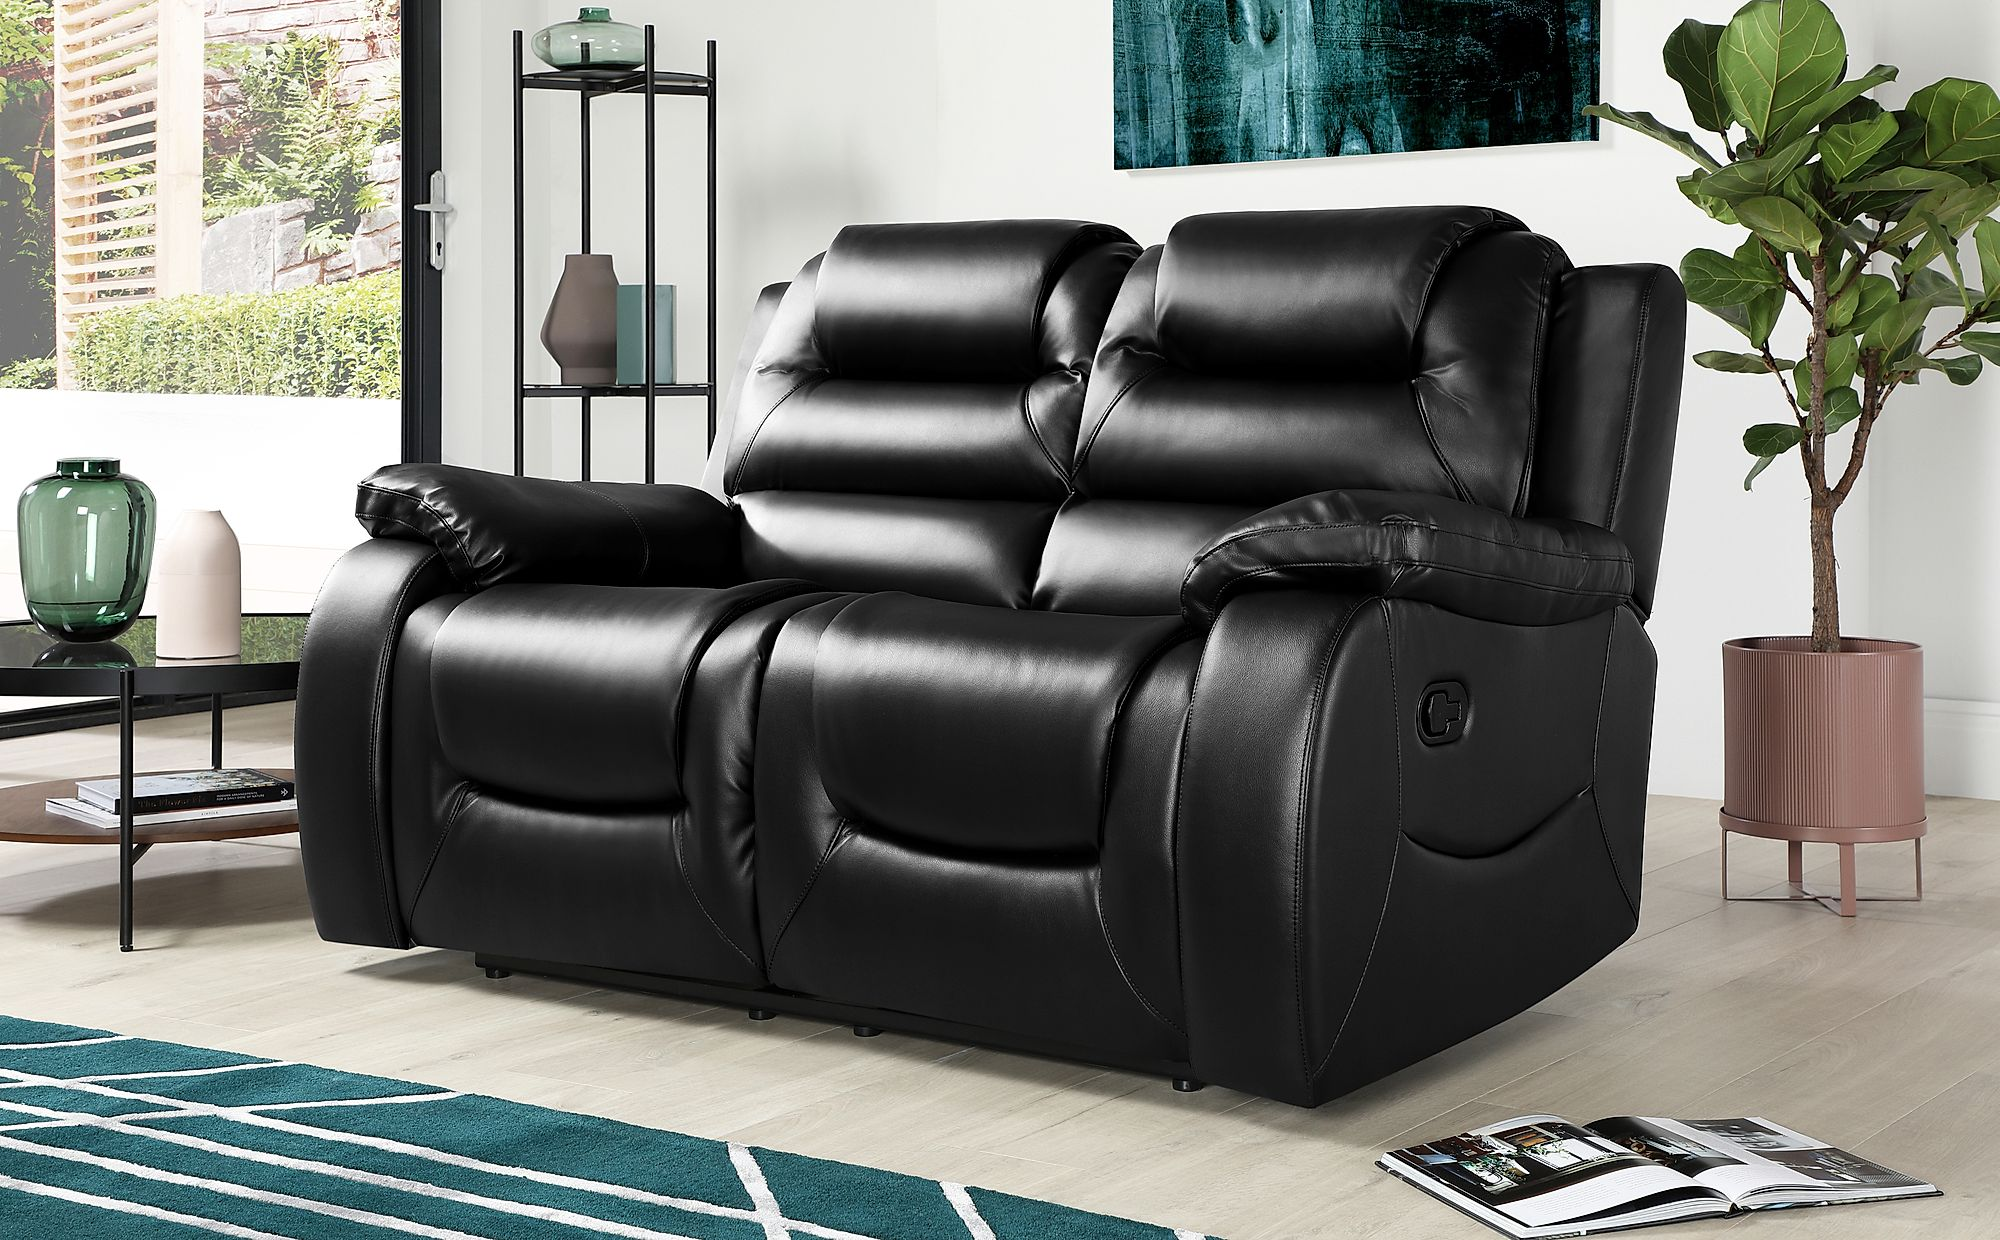 Vancouver Black Leather 6 Seater Recliner Sofa